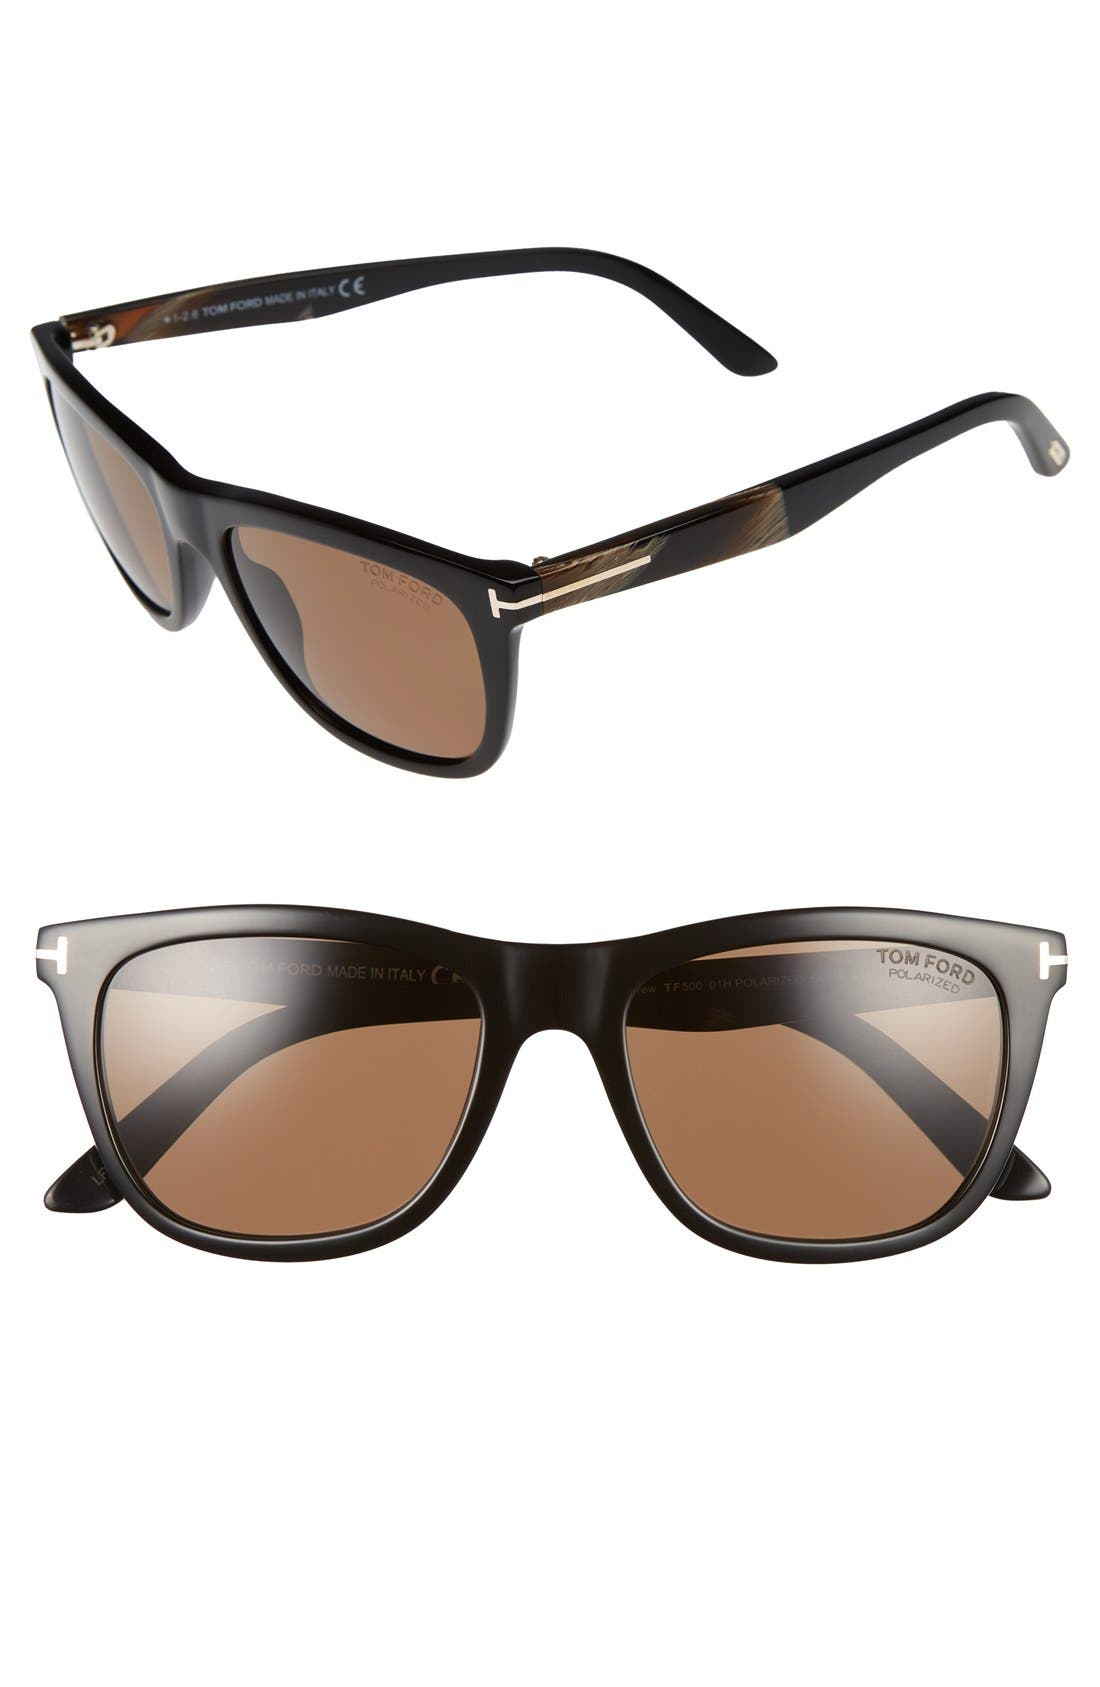 Andrew 54mm Sunglasses,                             Main thumbnail 1, color,                             Black/ Brown Horn/ Brown Polar